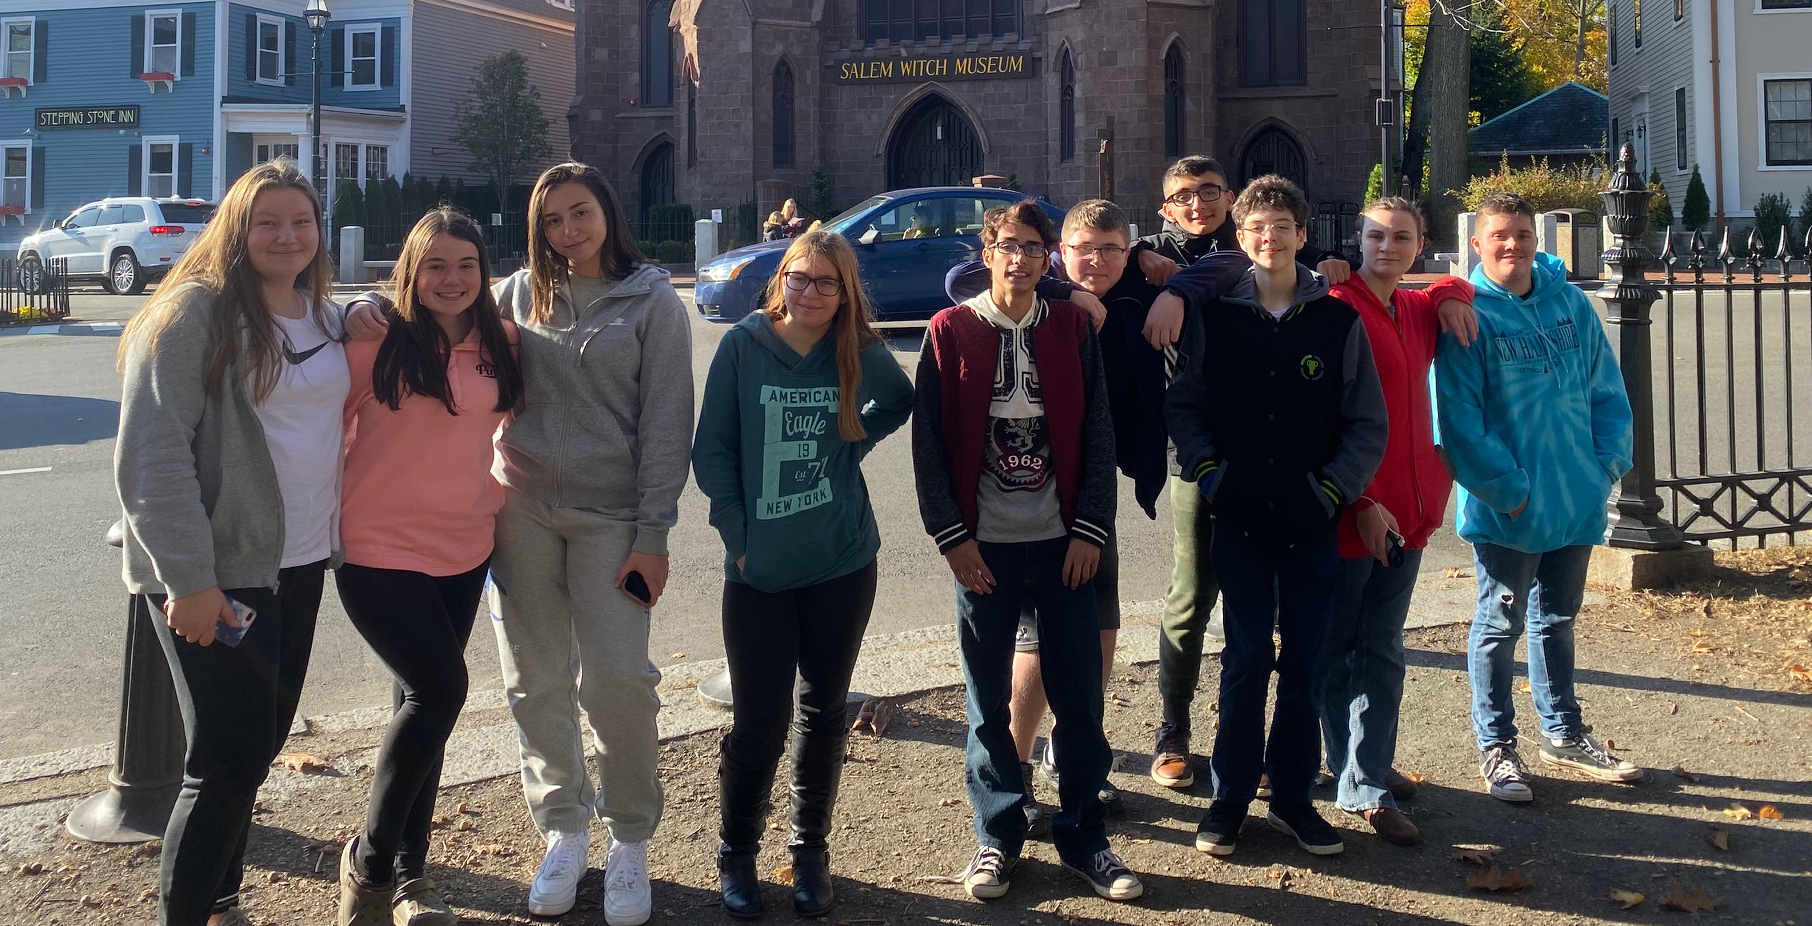 High school Atoms visit Salem, Massachusetts after reading the play, The Crucible written by Arthur Miller